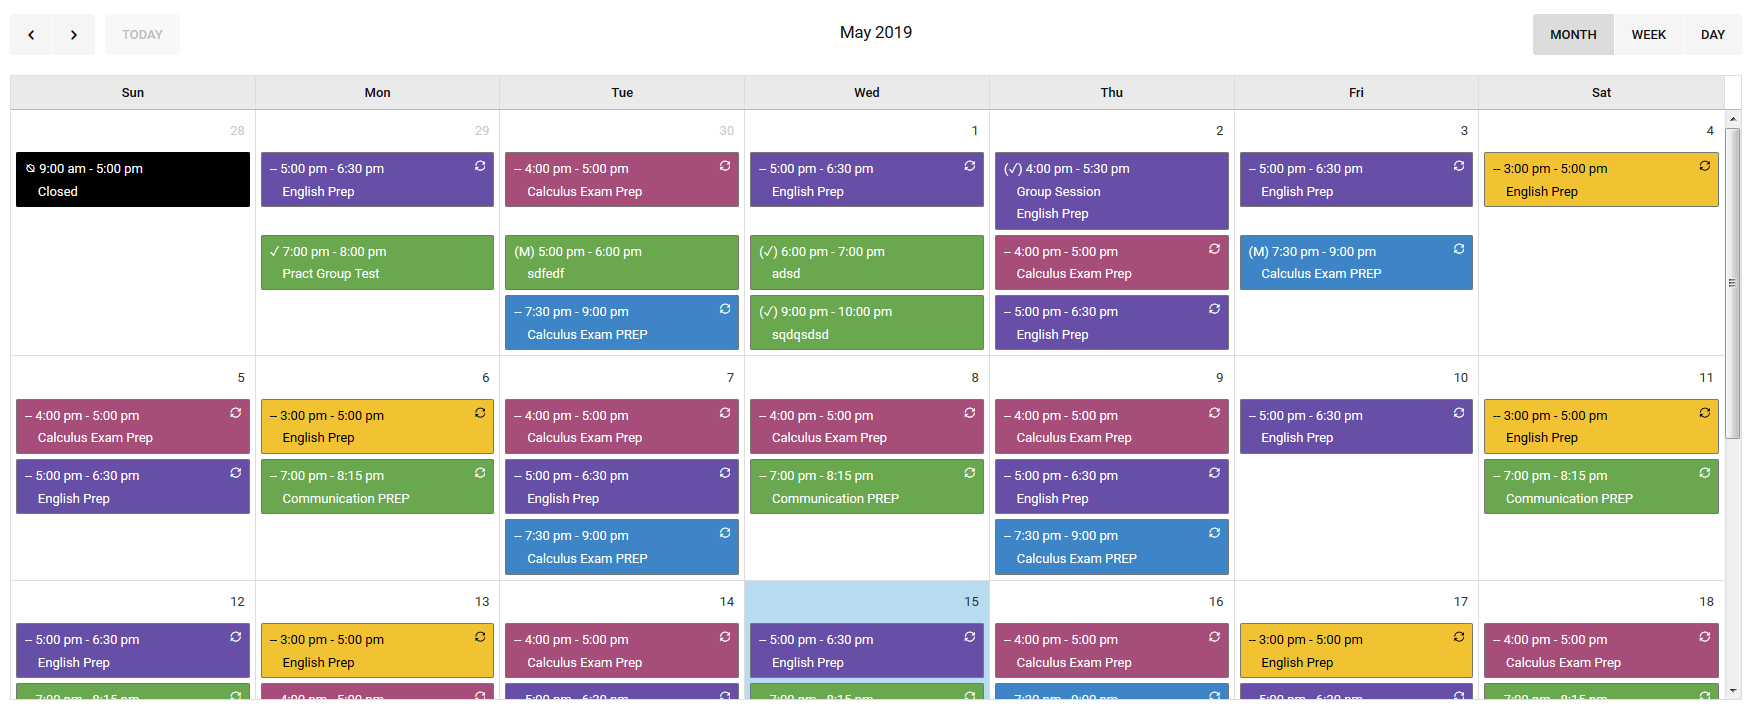 Colorful monthly appointment schedule image